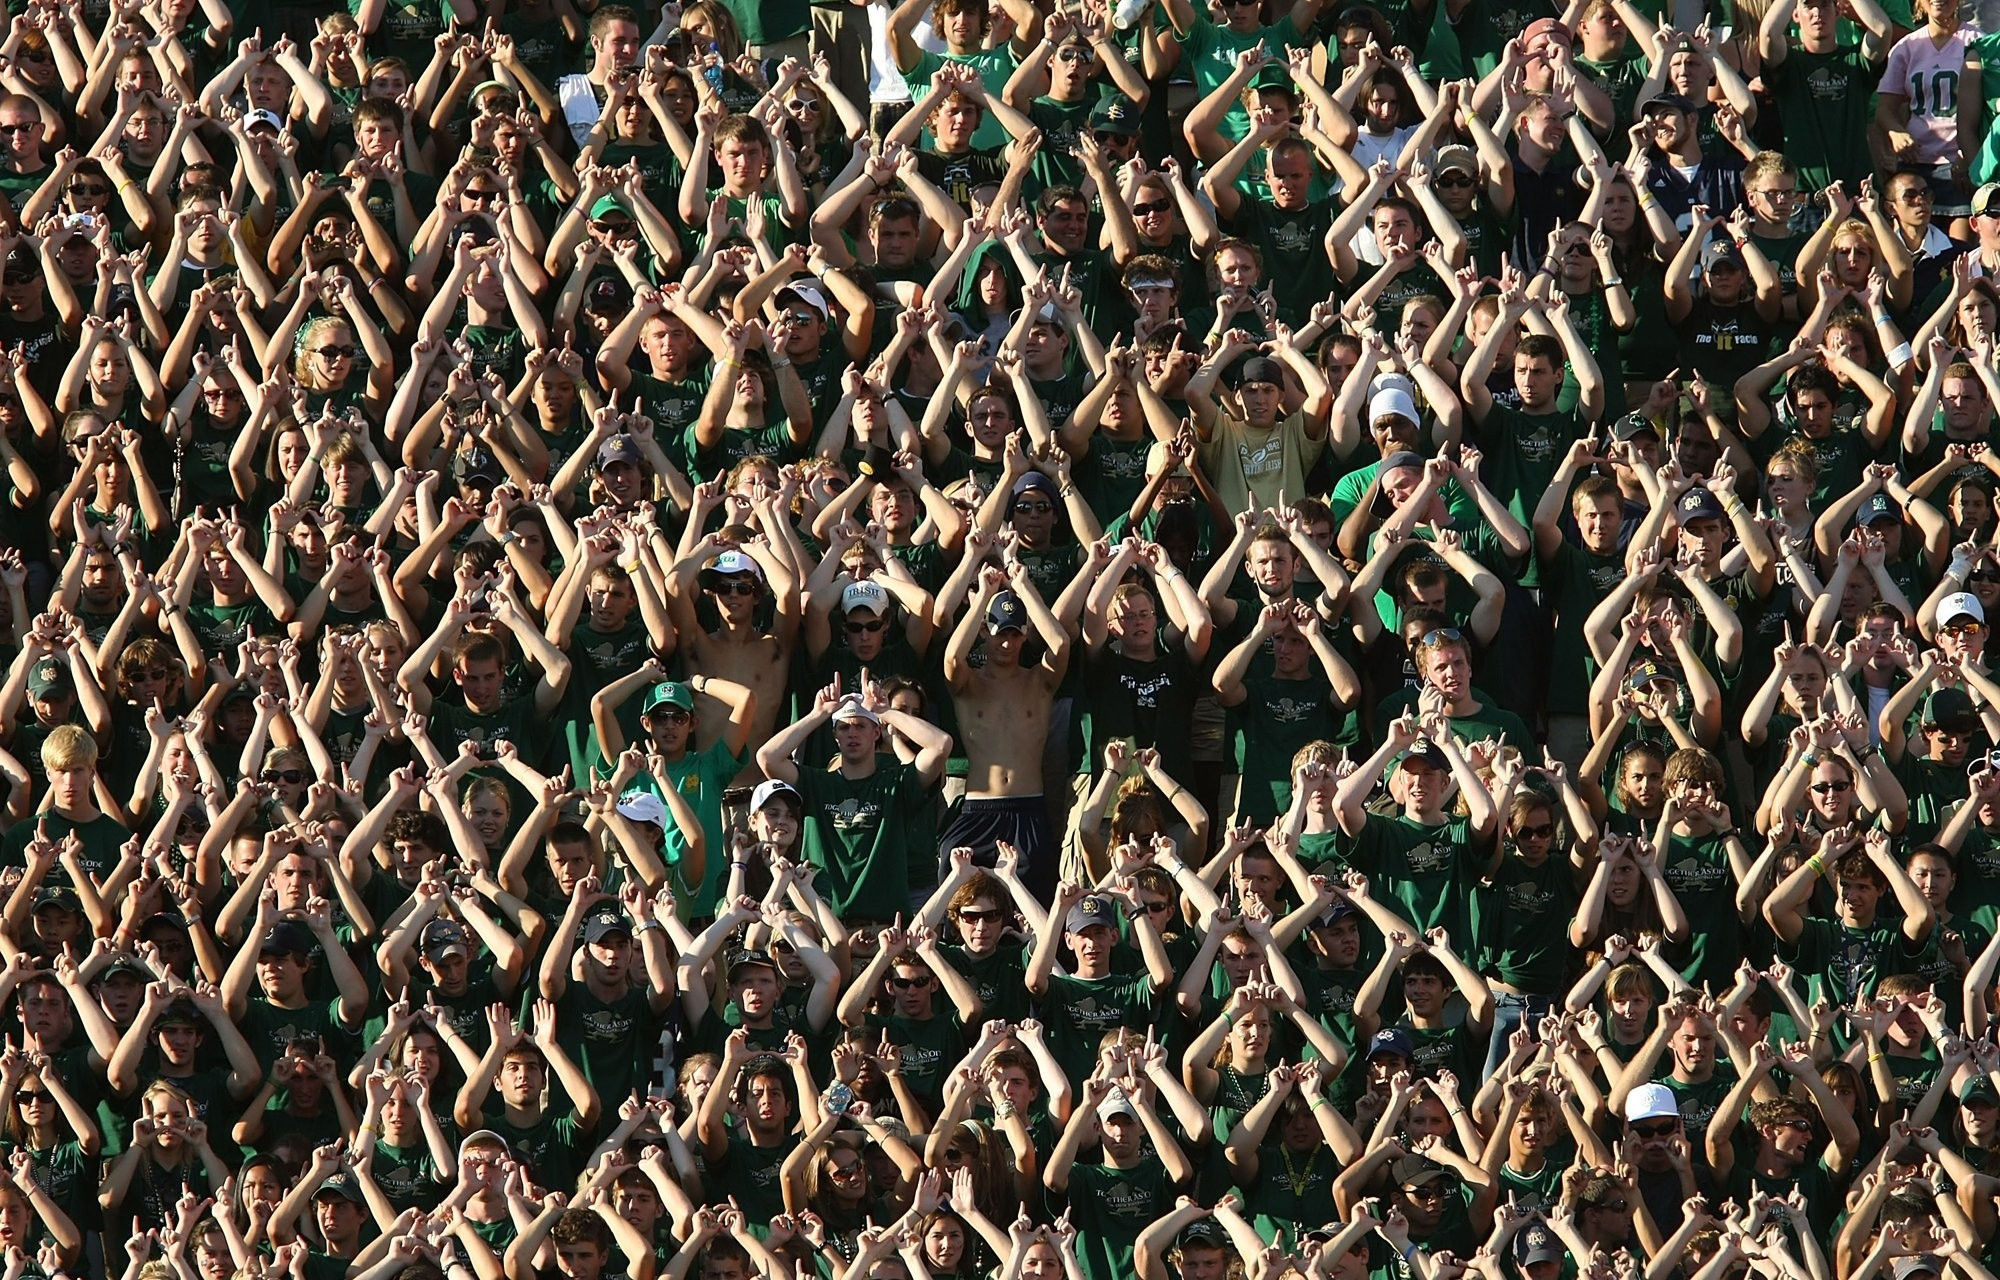 2000x1280 NOTRE DAME Fighting Irish college football crowd people wallpaper .